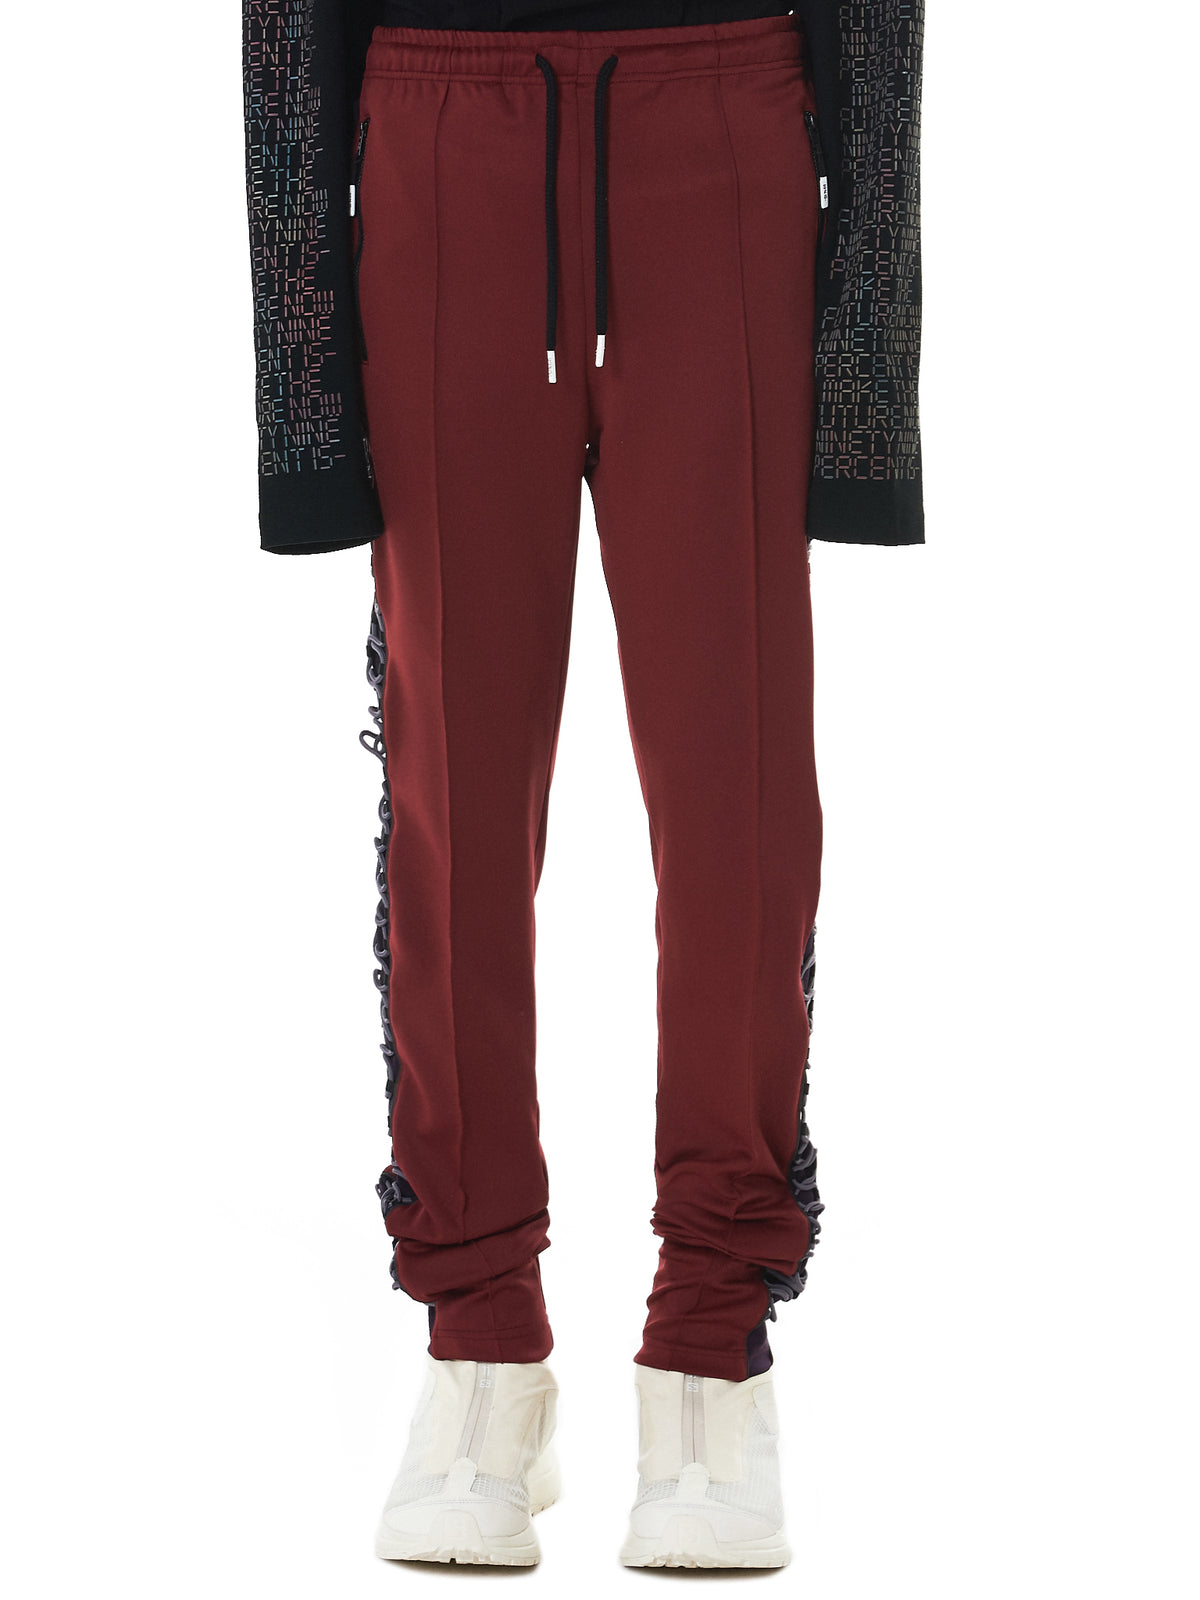 Lace-Up Detail Joggers (NN11-PT03-WINE)